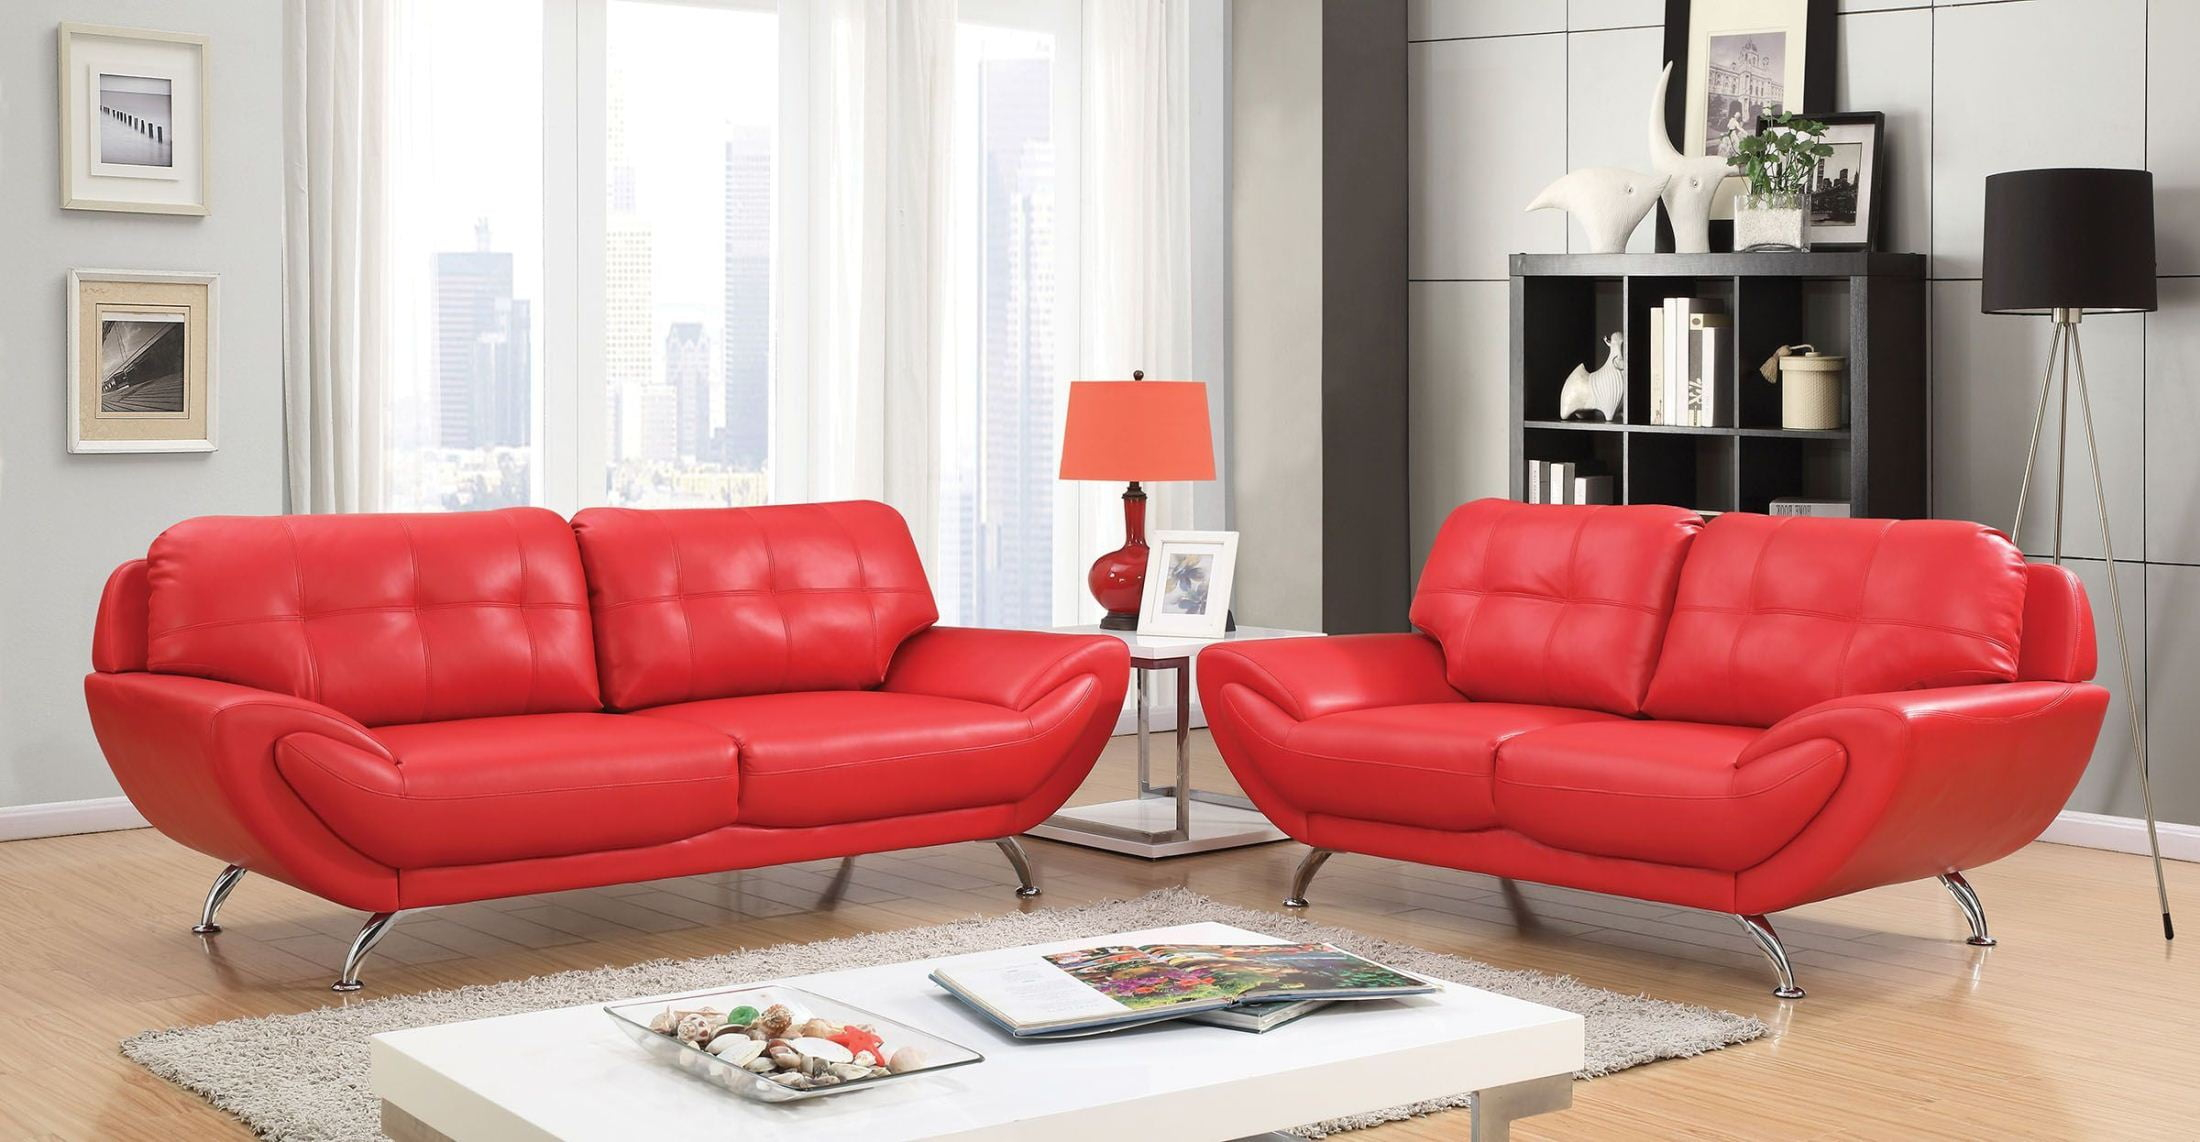 Reanna Red Living Room Set intended for 11 Genius Initiatives of How to Improve Red Living Room Sets